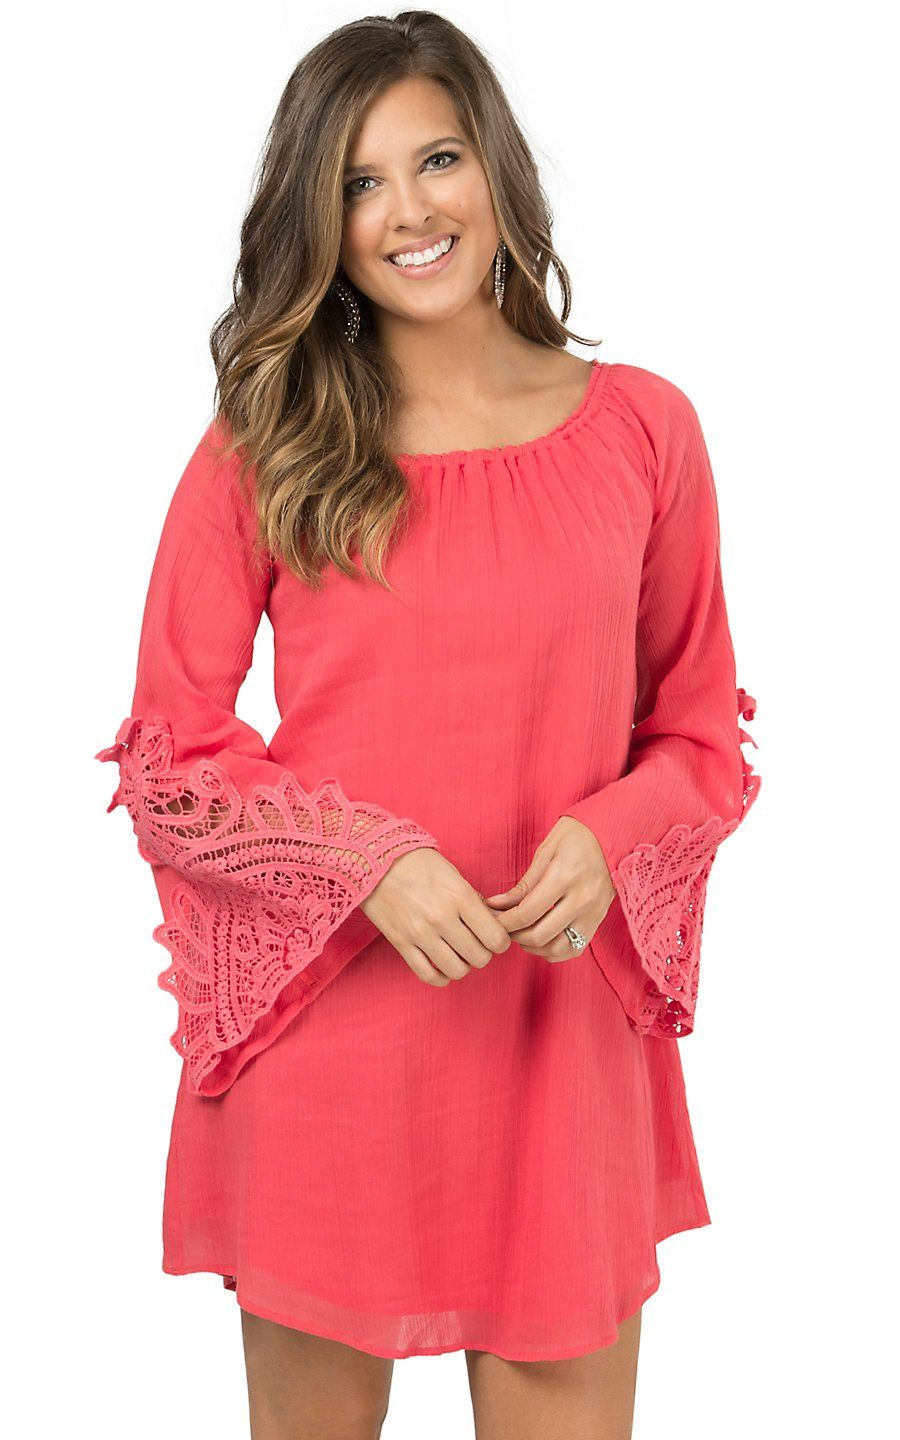 bbaa22518df1 Wrangler Women's Coral with Crochet Long Bell Sleeves Dress | Cavender's